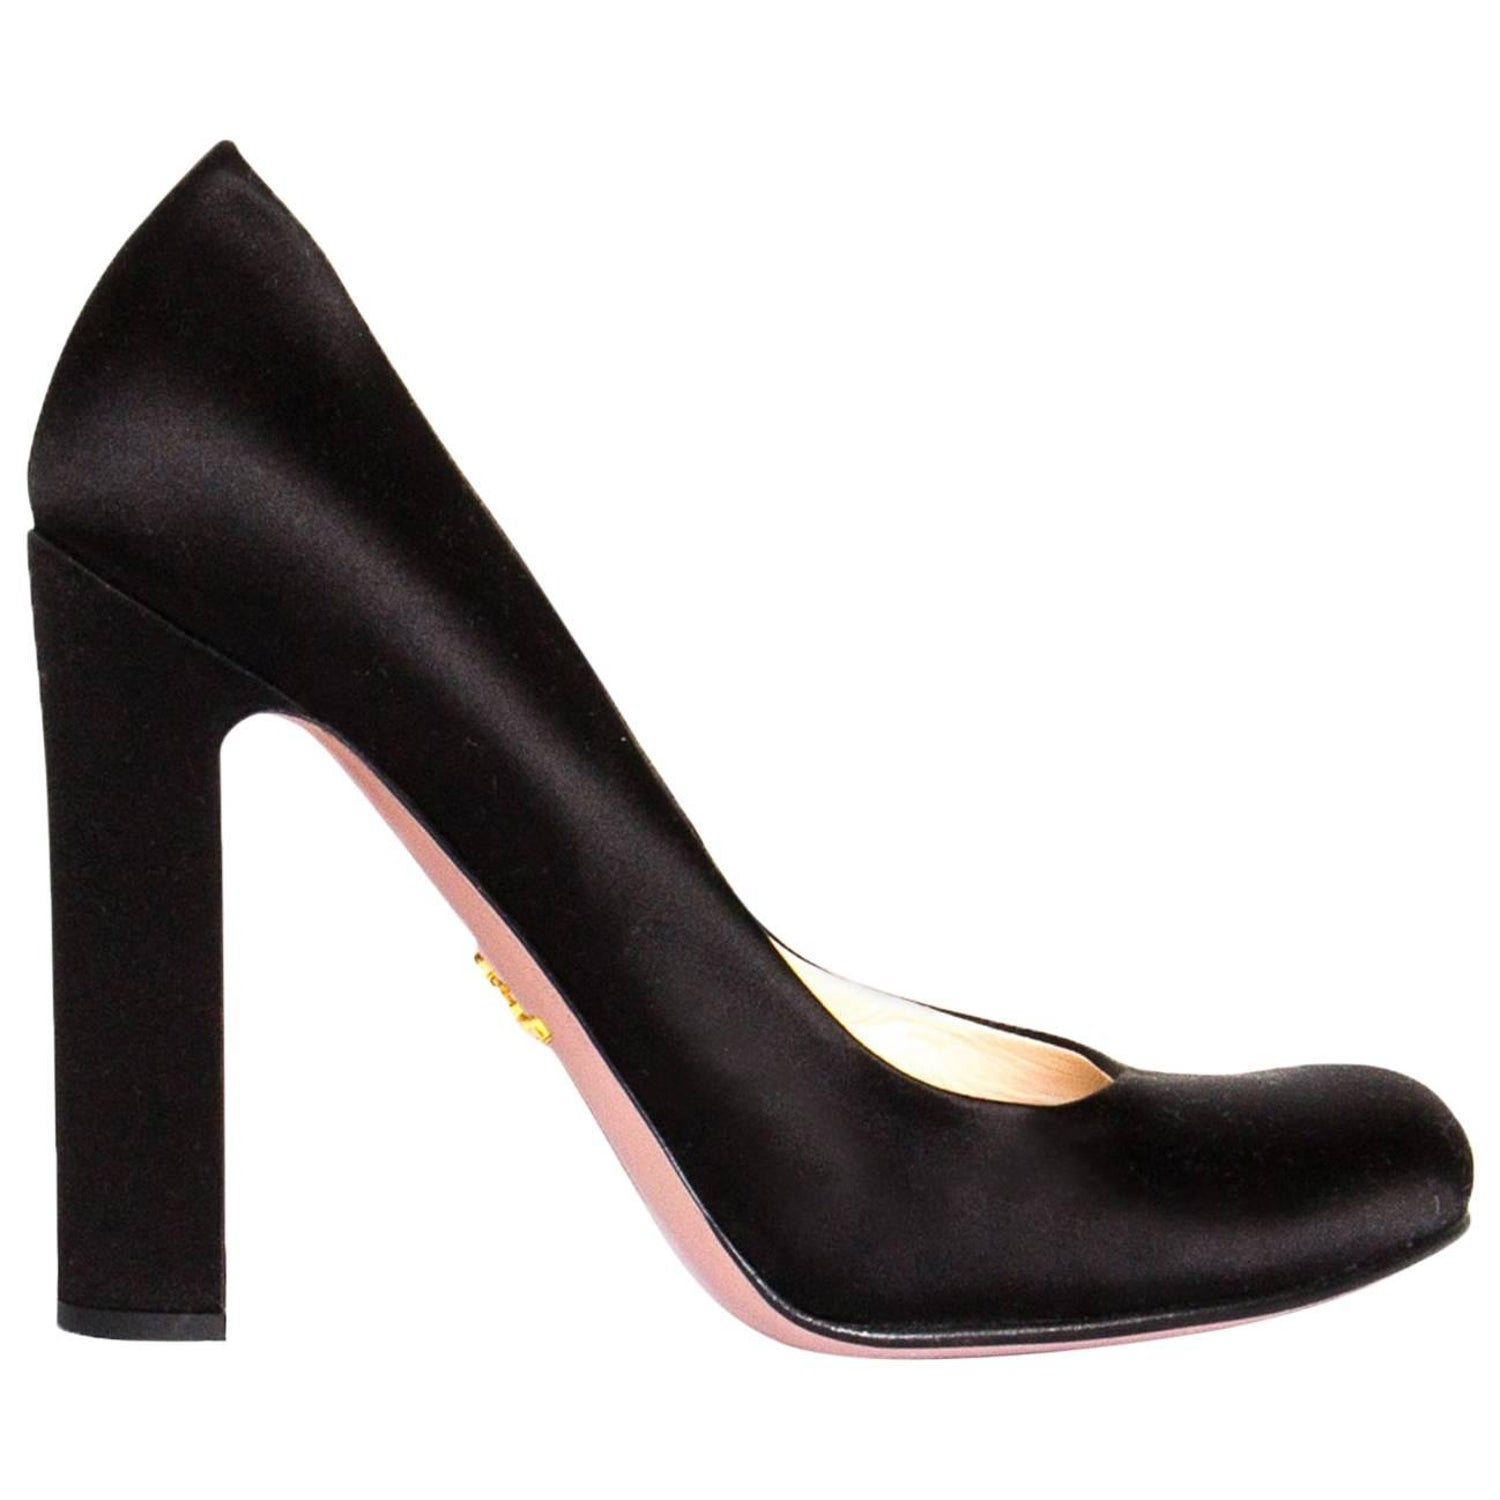 0fc82c7fba00a7 Prada Black Satin Heel Pumps at 1stdibs